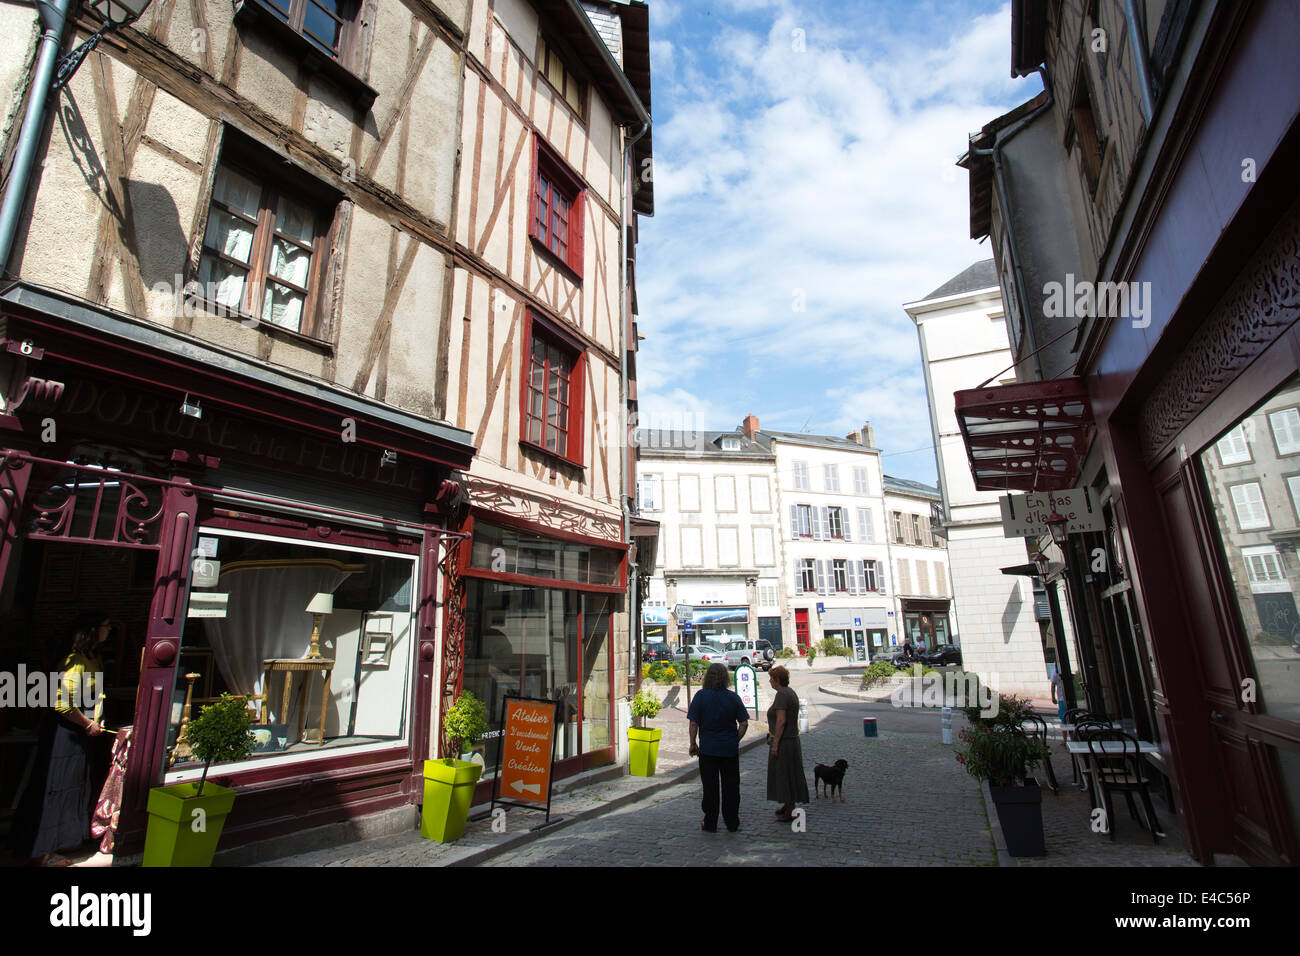 Village de la Boucherie, Limoges, Haute-Vienne, Limousin region, West-Central France, Europe - Stock Image